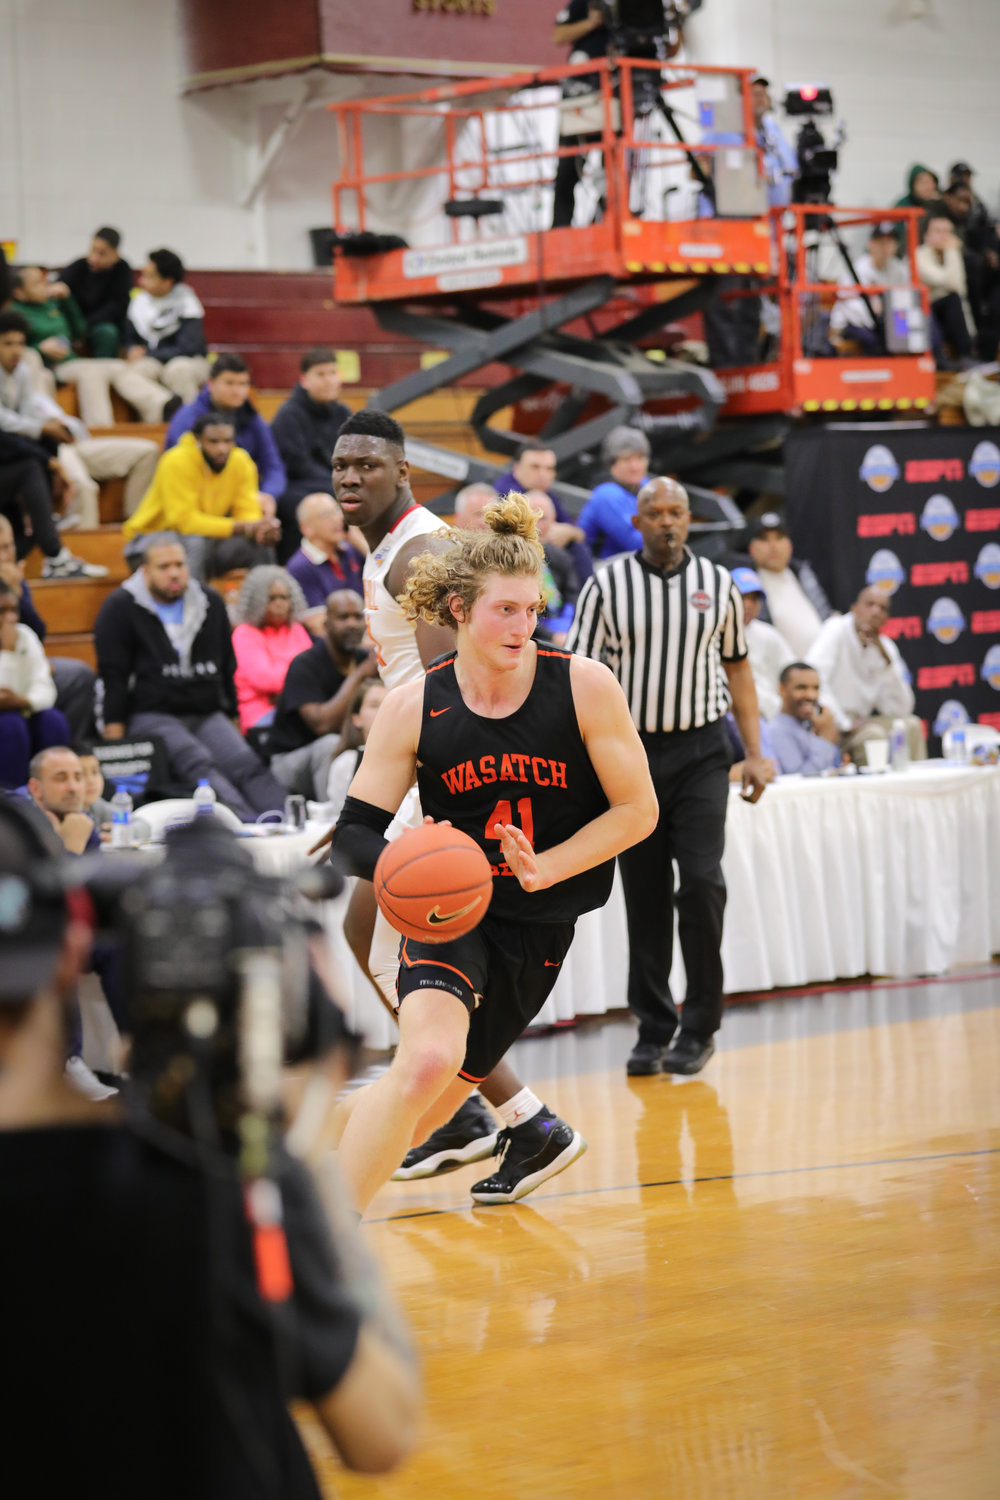 BBall_Geico_Nationals_2019 (45 of 59).jpg